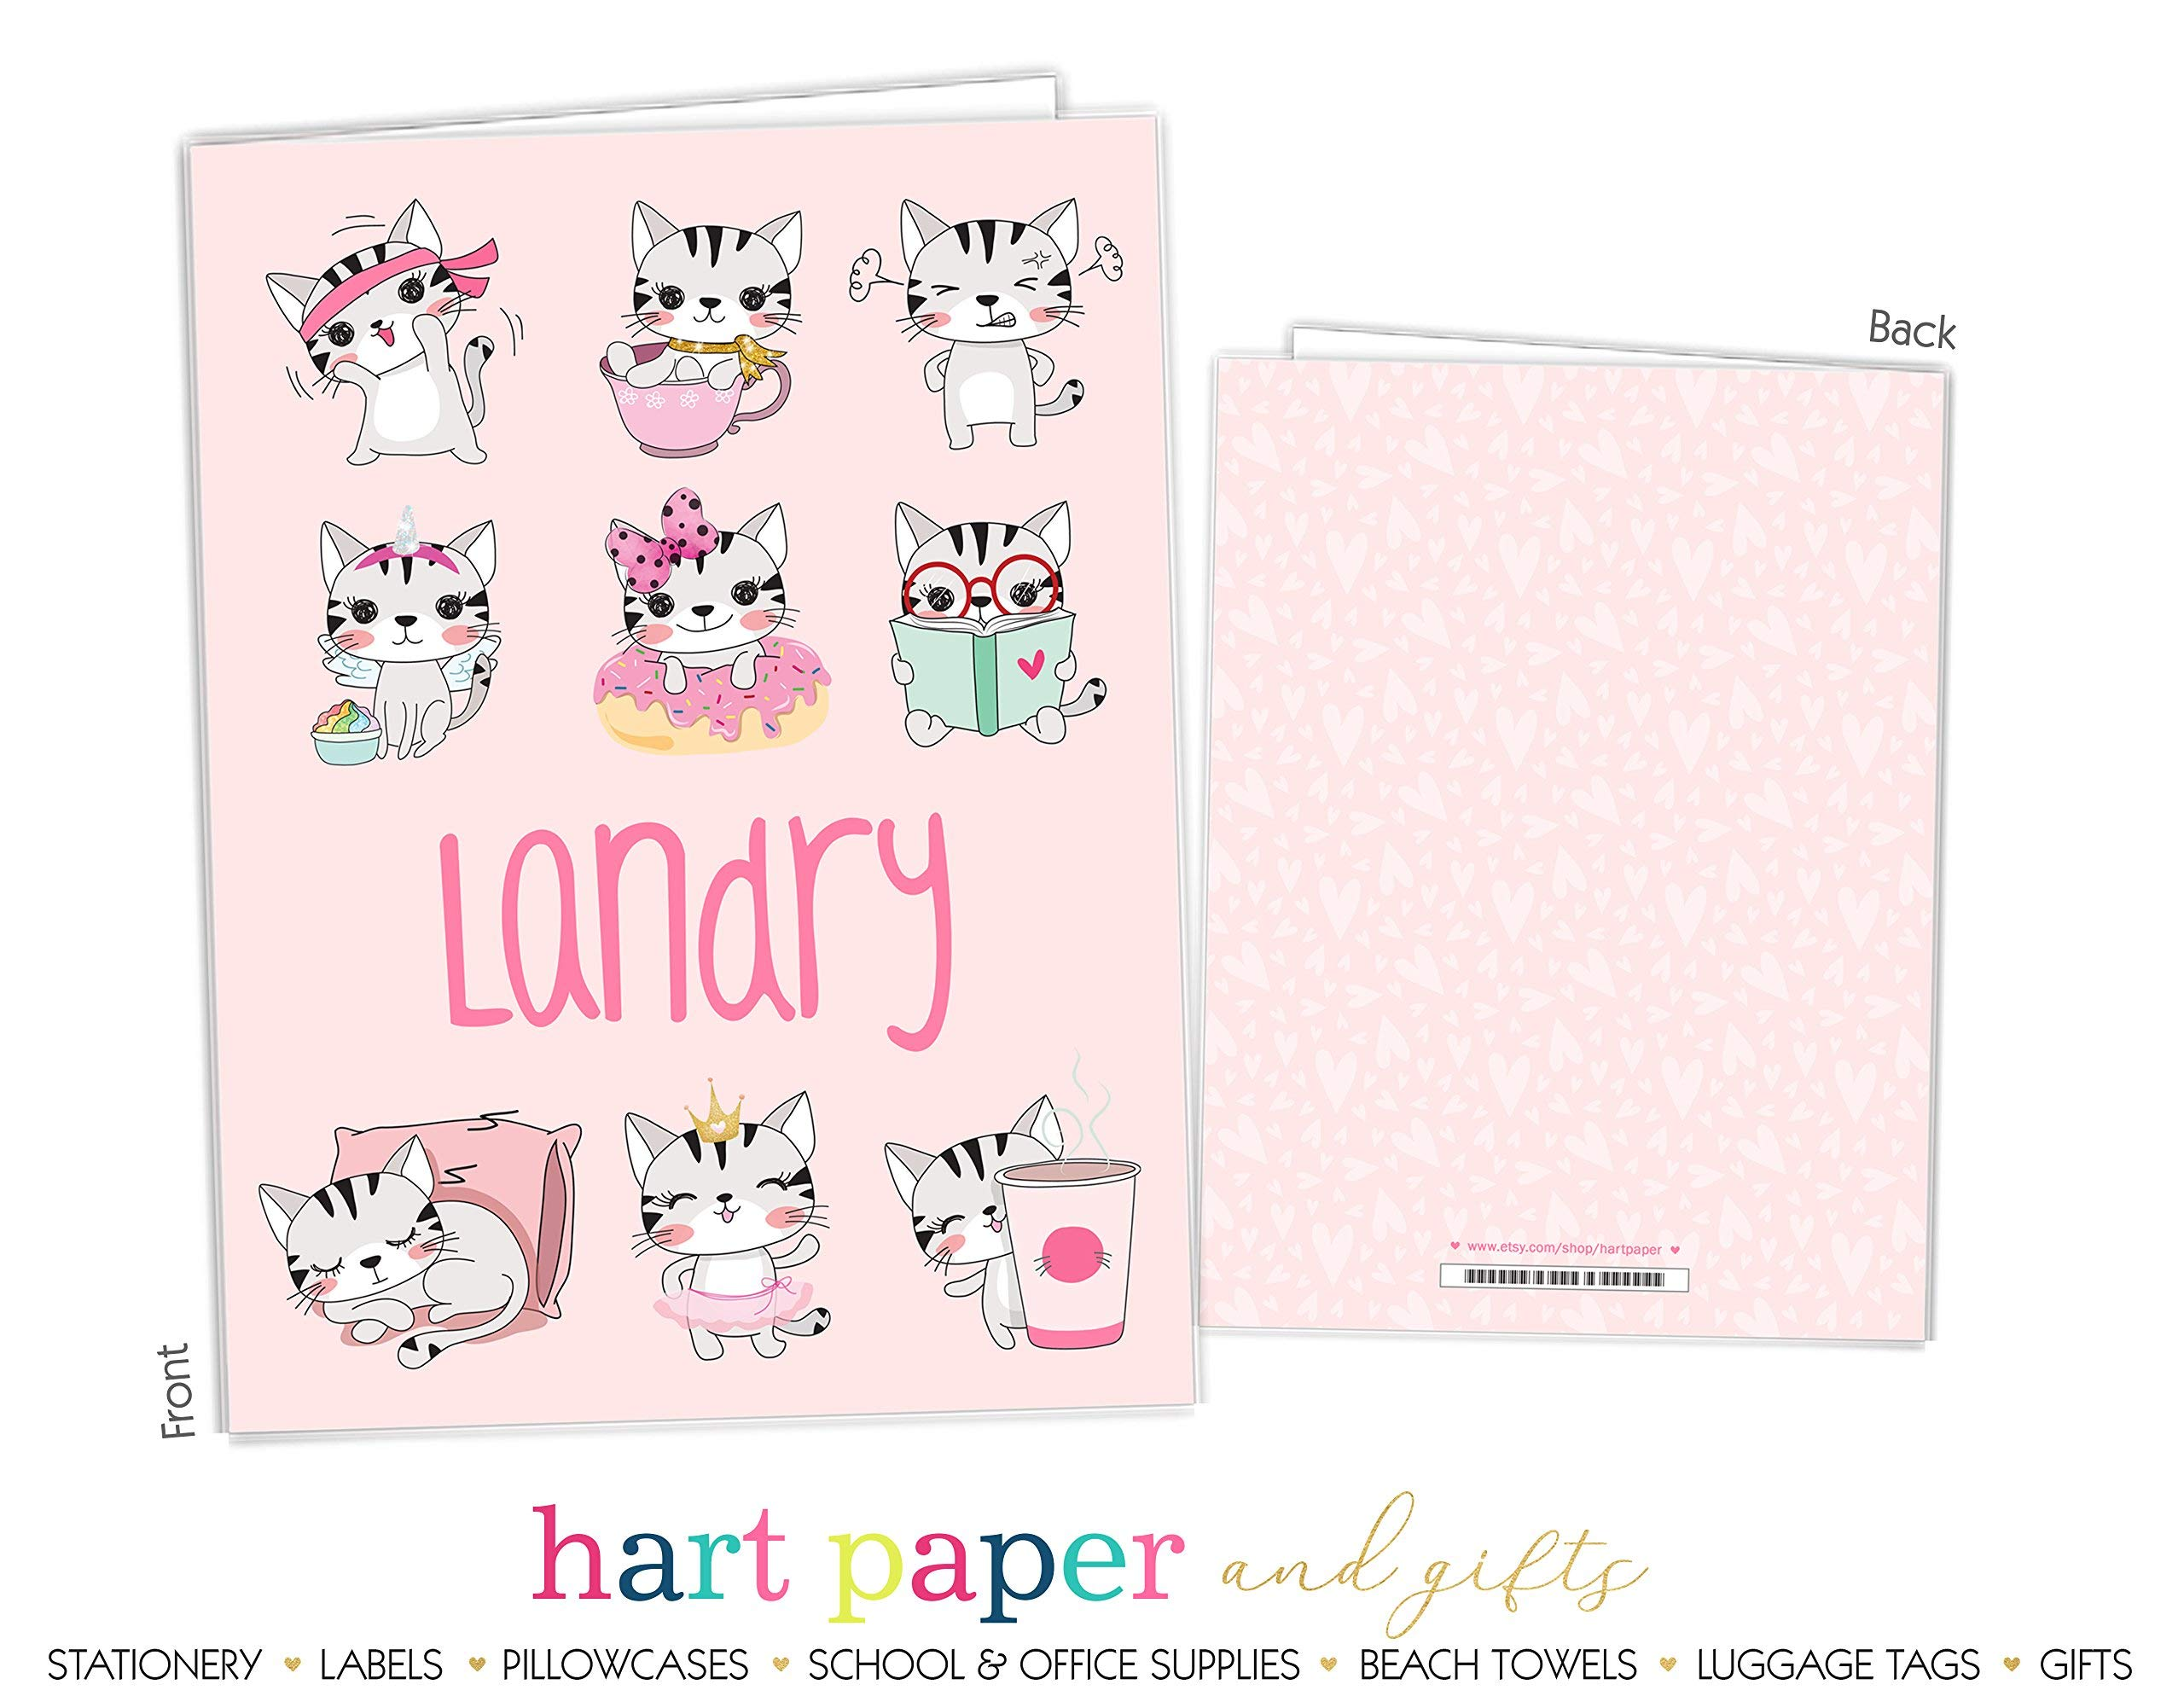 Cat Kitten Pink Hearts 2 Pocket Folder Gift Name Back to School Supplies Teacher Office Birthday Girl Kids Custom Personalized Custom by Hart Paper